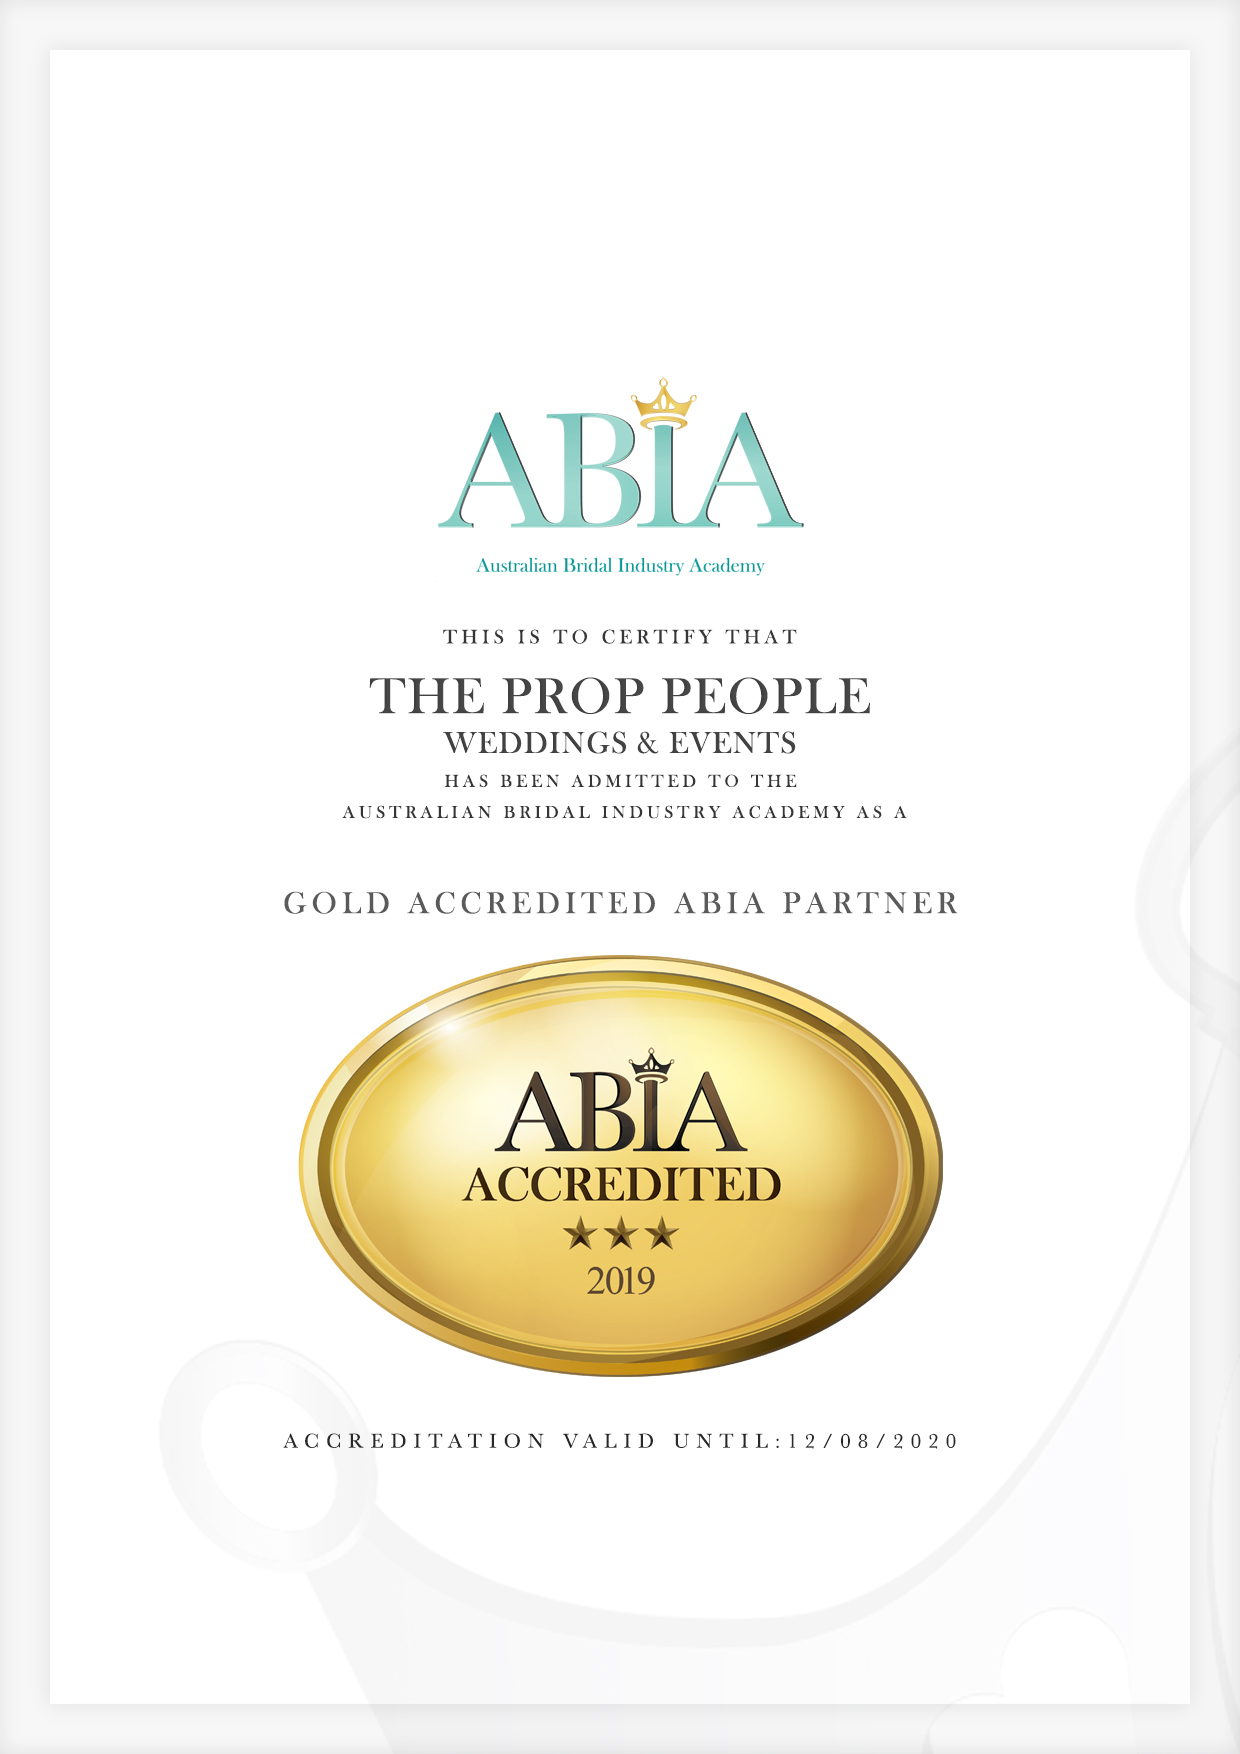 ABIA-Accreditation-Certificate-The Prop People Weddings & Events